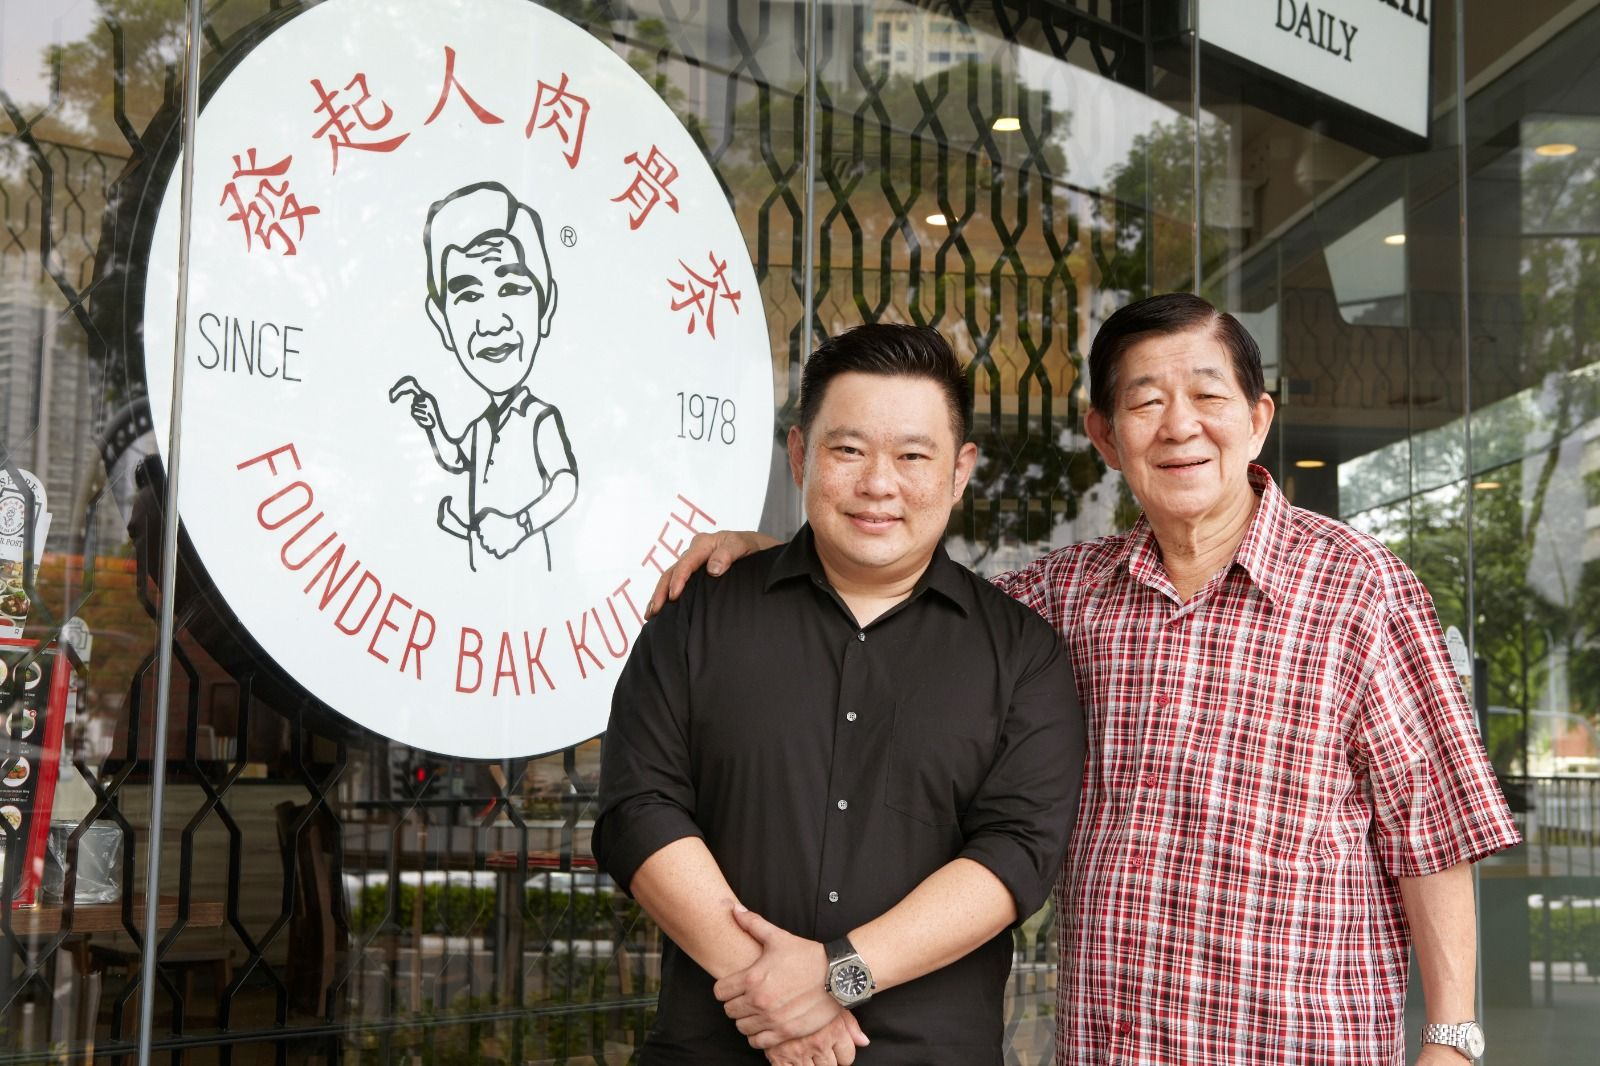 Founder Bak Kut Teh Risks Closing In Two Months If Business Does Not Pick Up